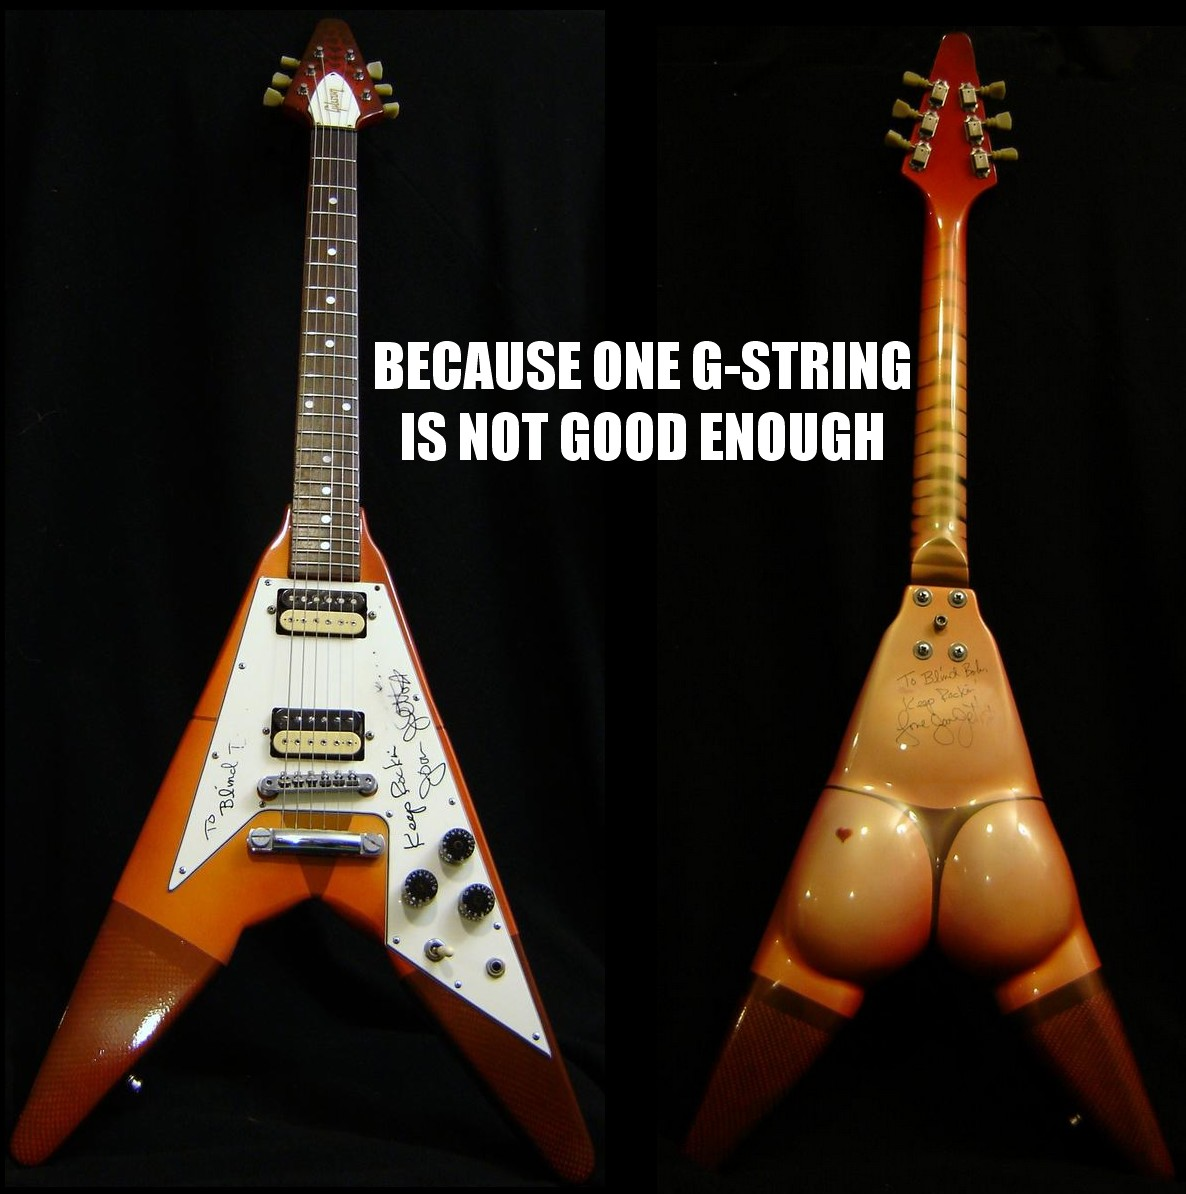 Because One G-String is Not Good Enough